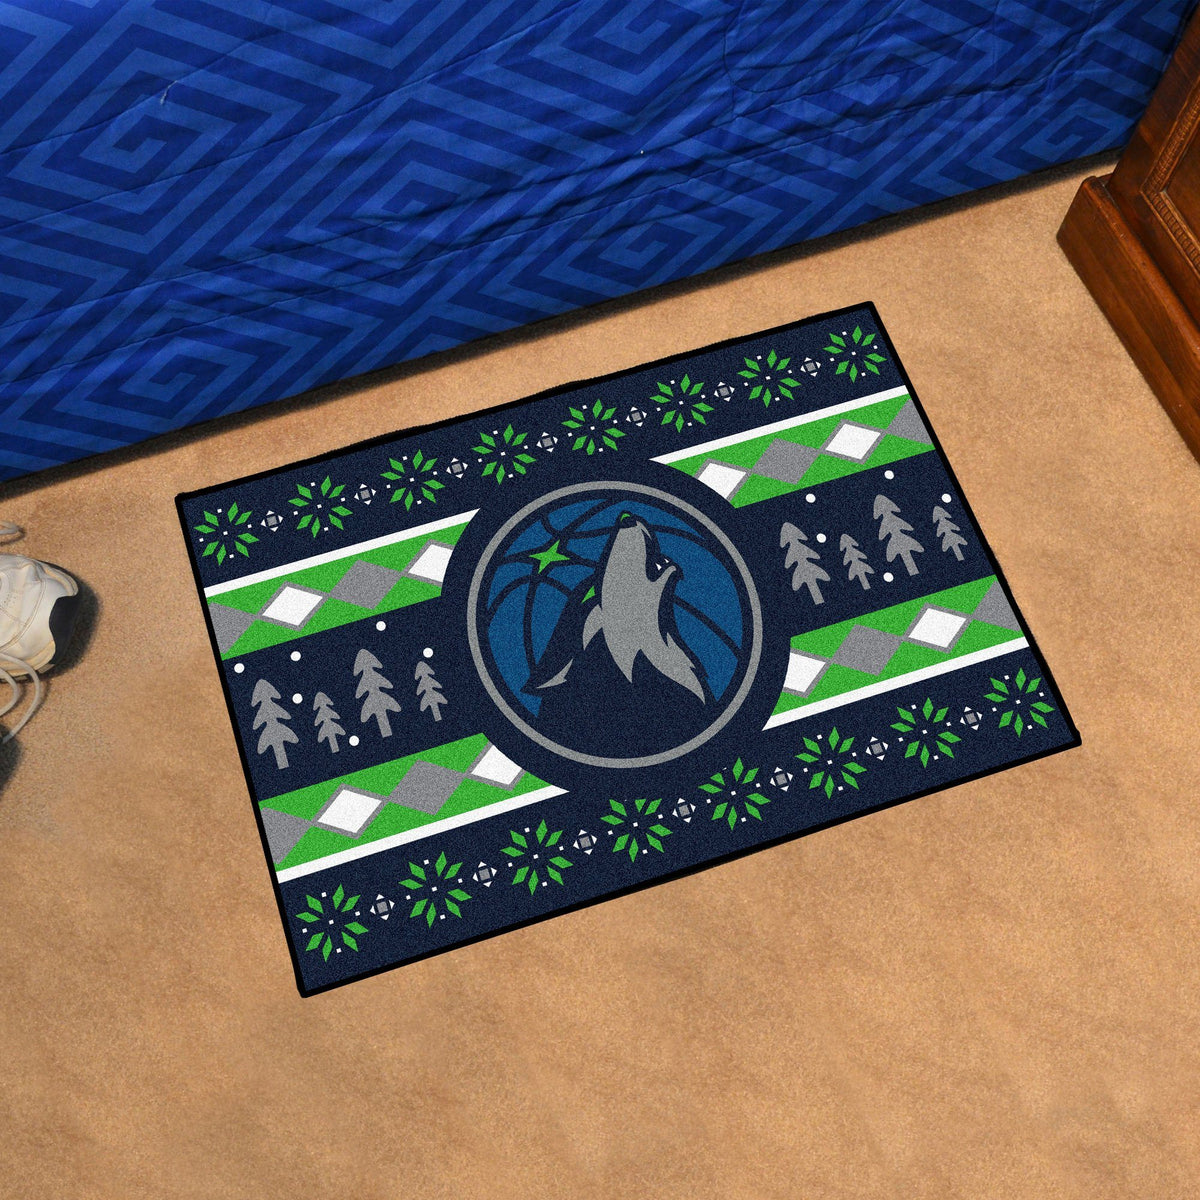 NBA - Holiday Sweater Starter Mat NBA Mats, Rectangular Mats, Holiday Sweater Starter Mat, NBA, Home Fan Mats Minnesota Timberwolves